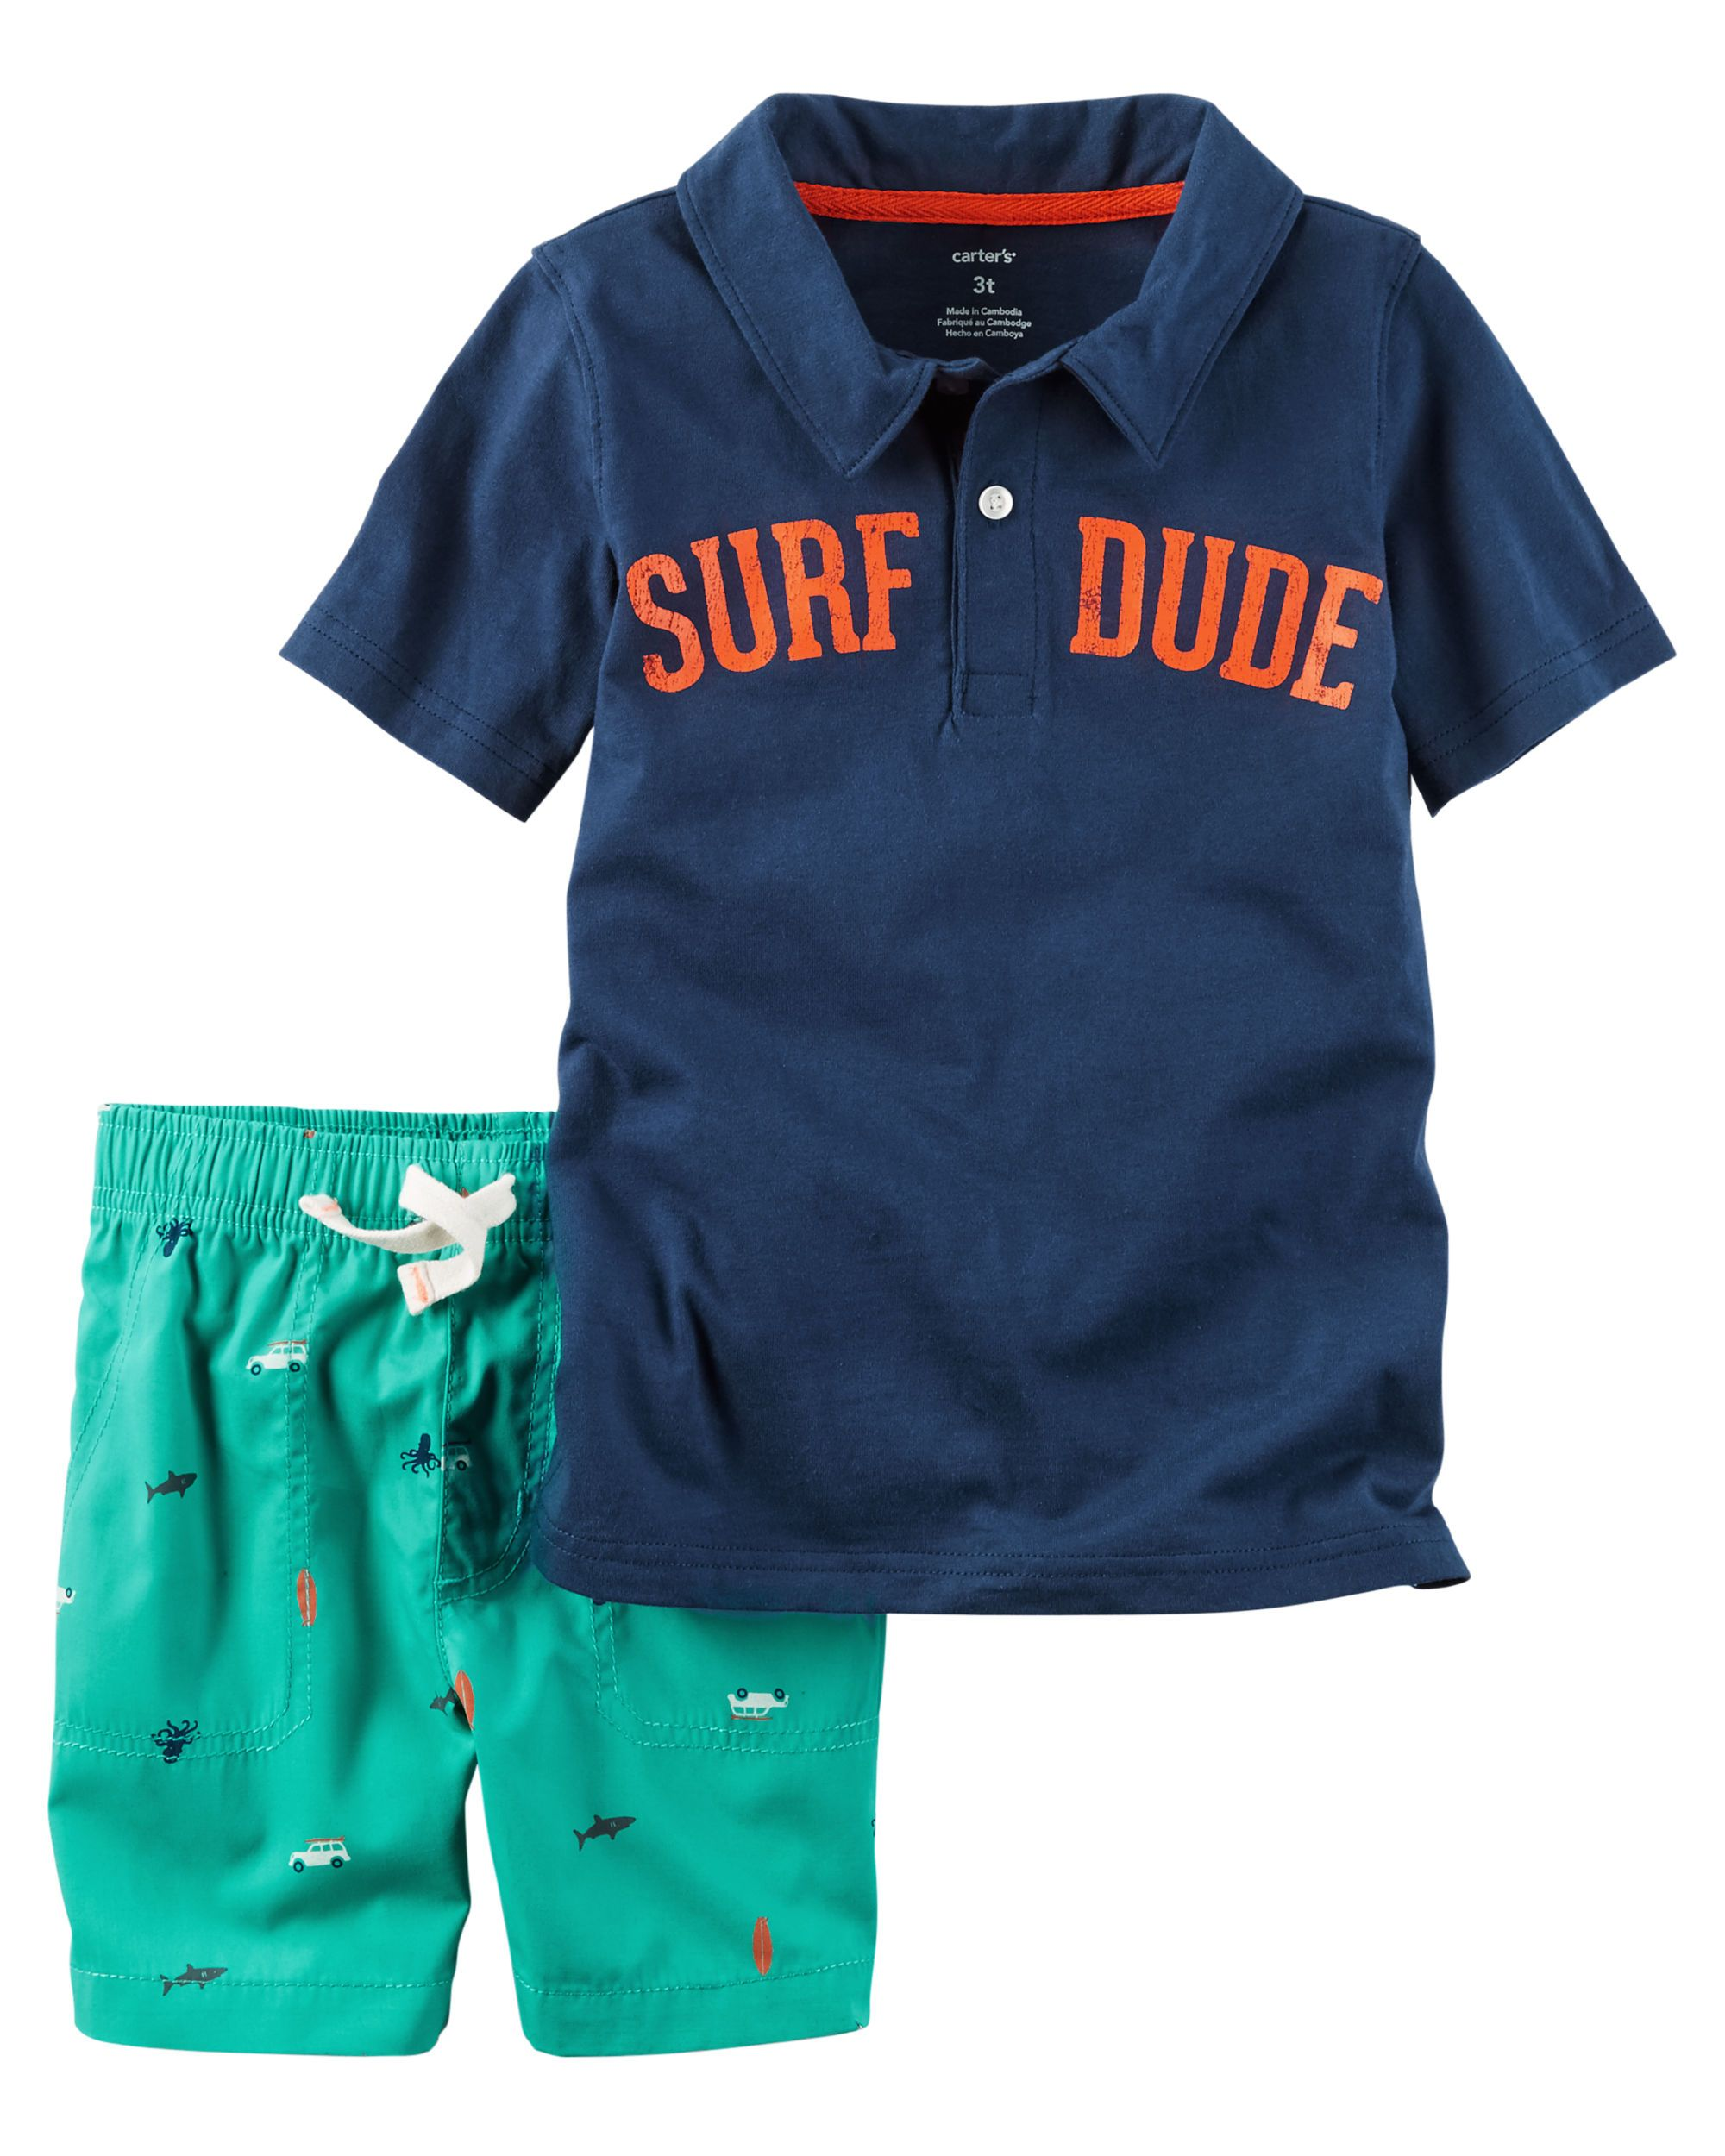 050fdeec58cb Baby Boy 2-Piece Surf Dude Polo & Poplin Short Set from Carters.com. Shop  clothing & accessories from a trusted name in kids, toddlers, and baby  clothes.